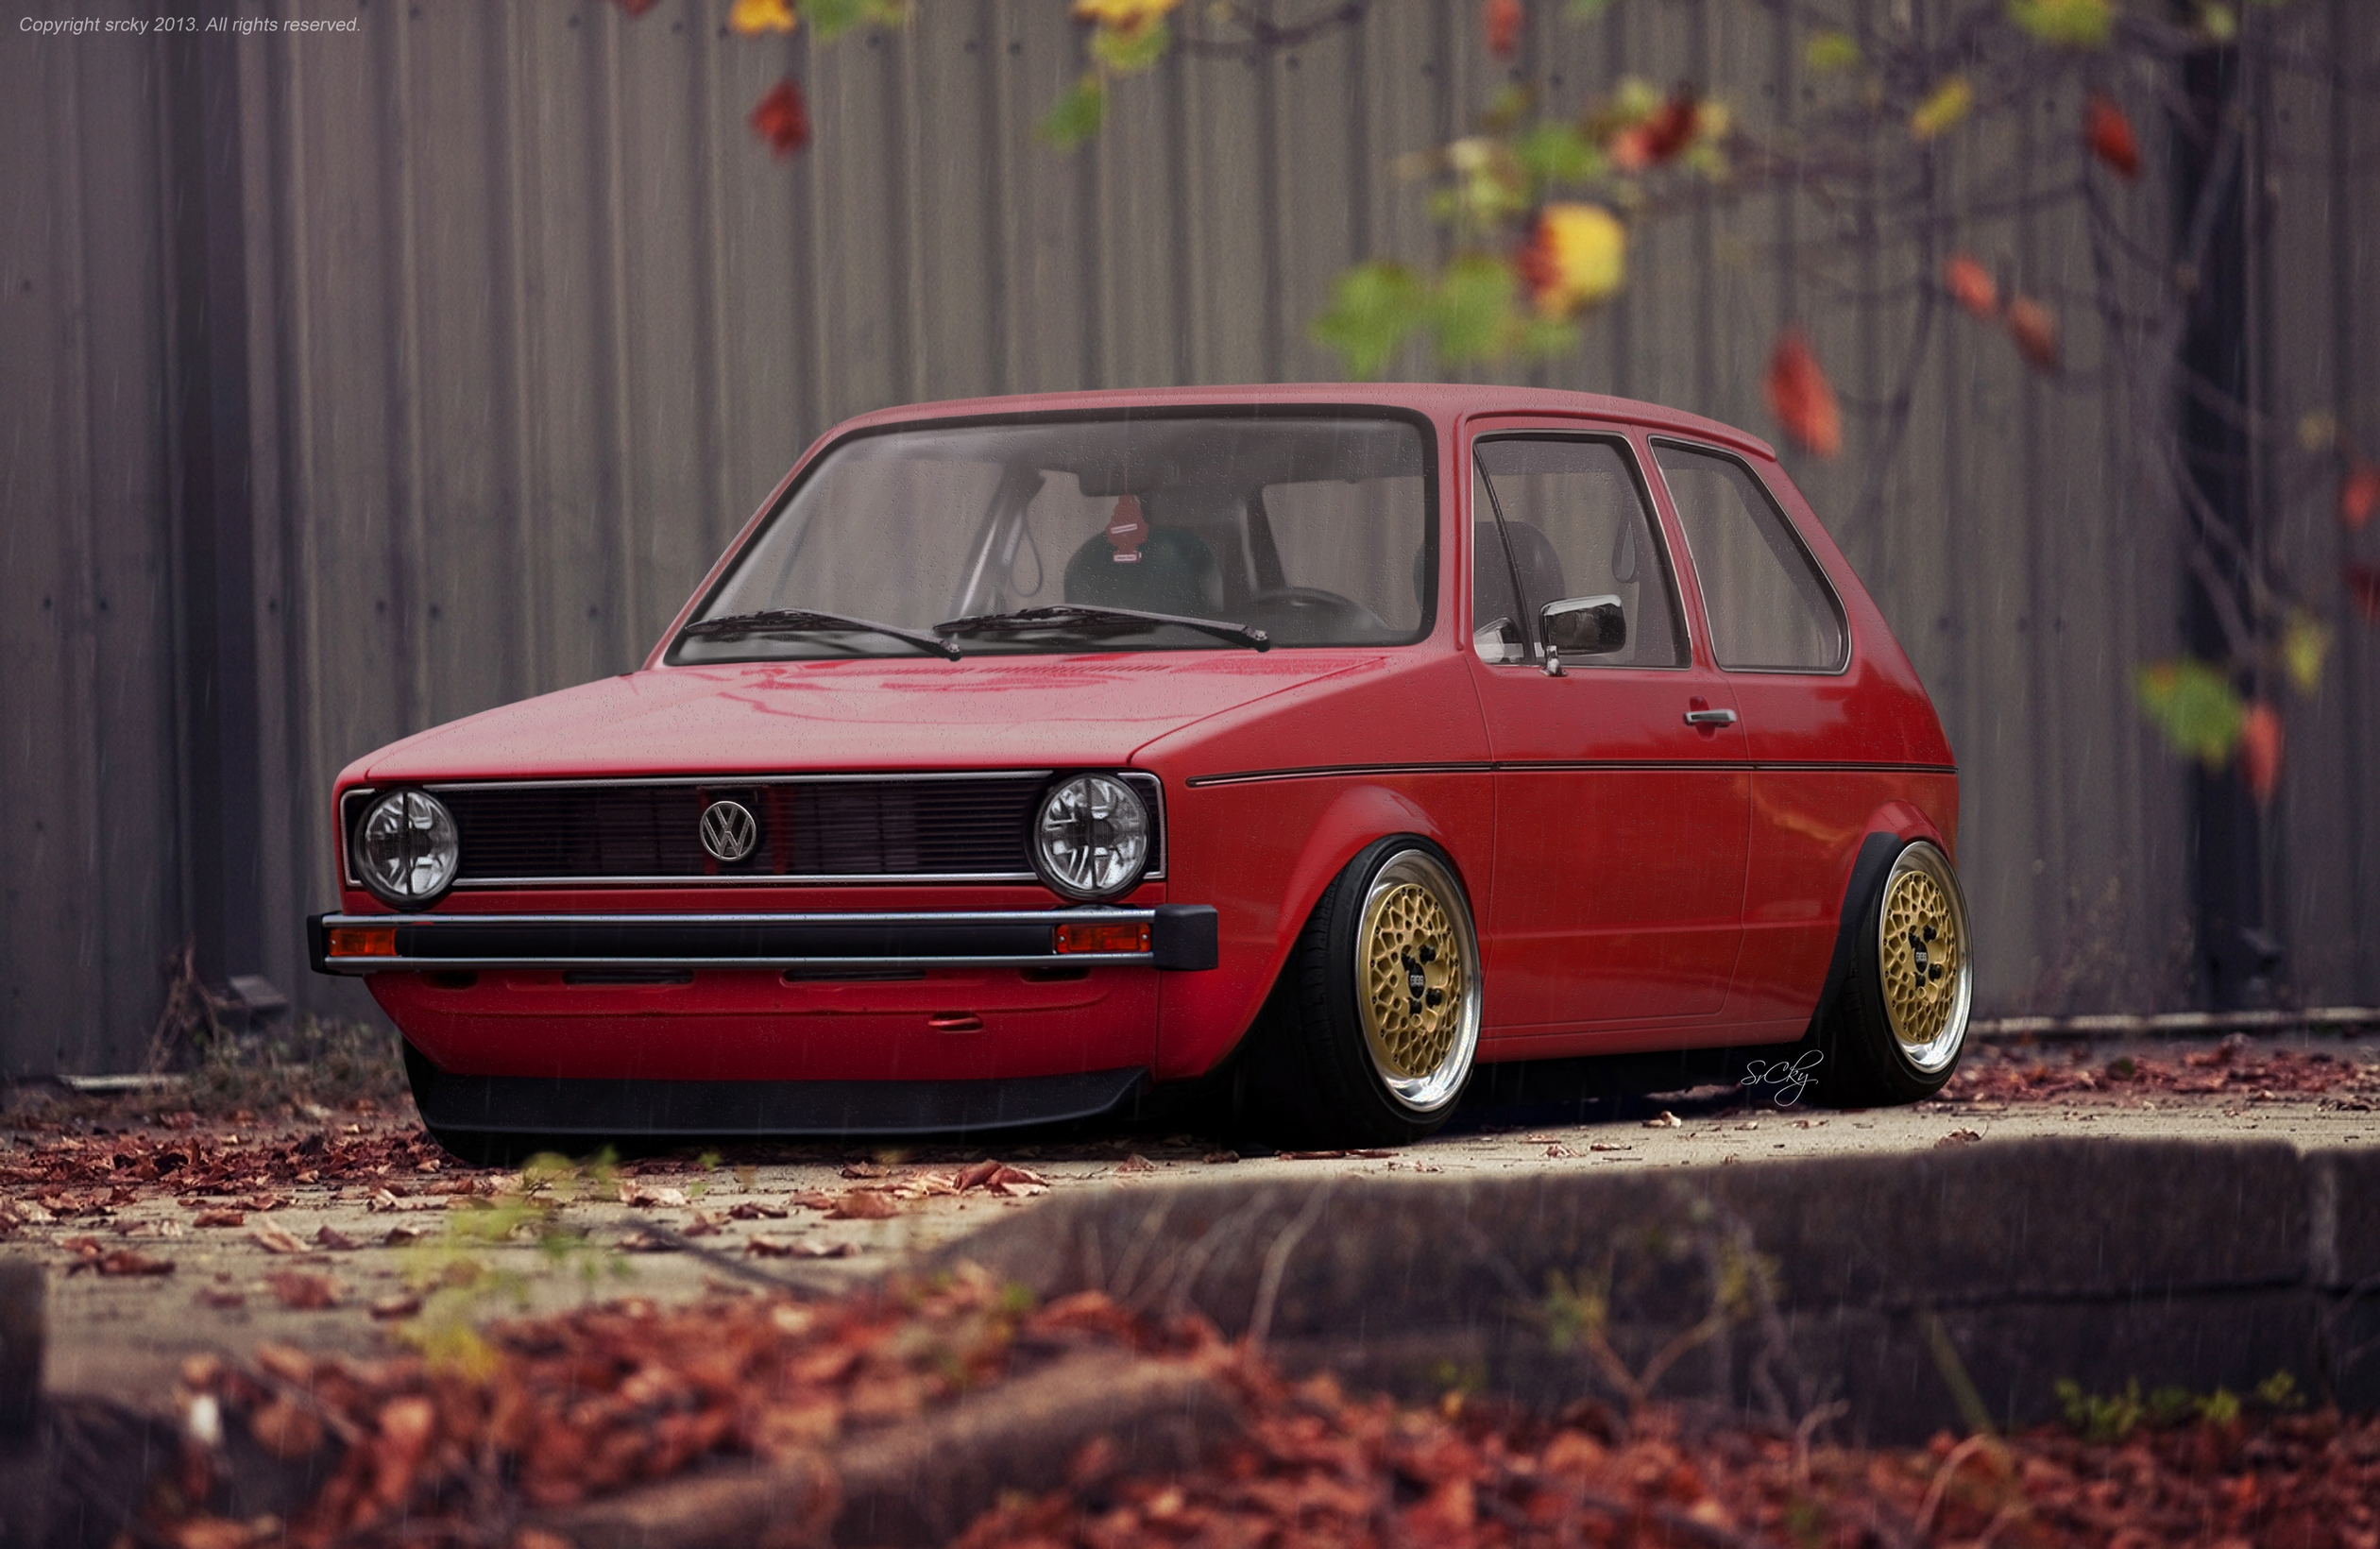 vw golf mk1 by srcky by srcky on deviantart. Black Bedroom Furniture Sets. Home Design Ideas